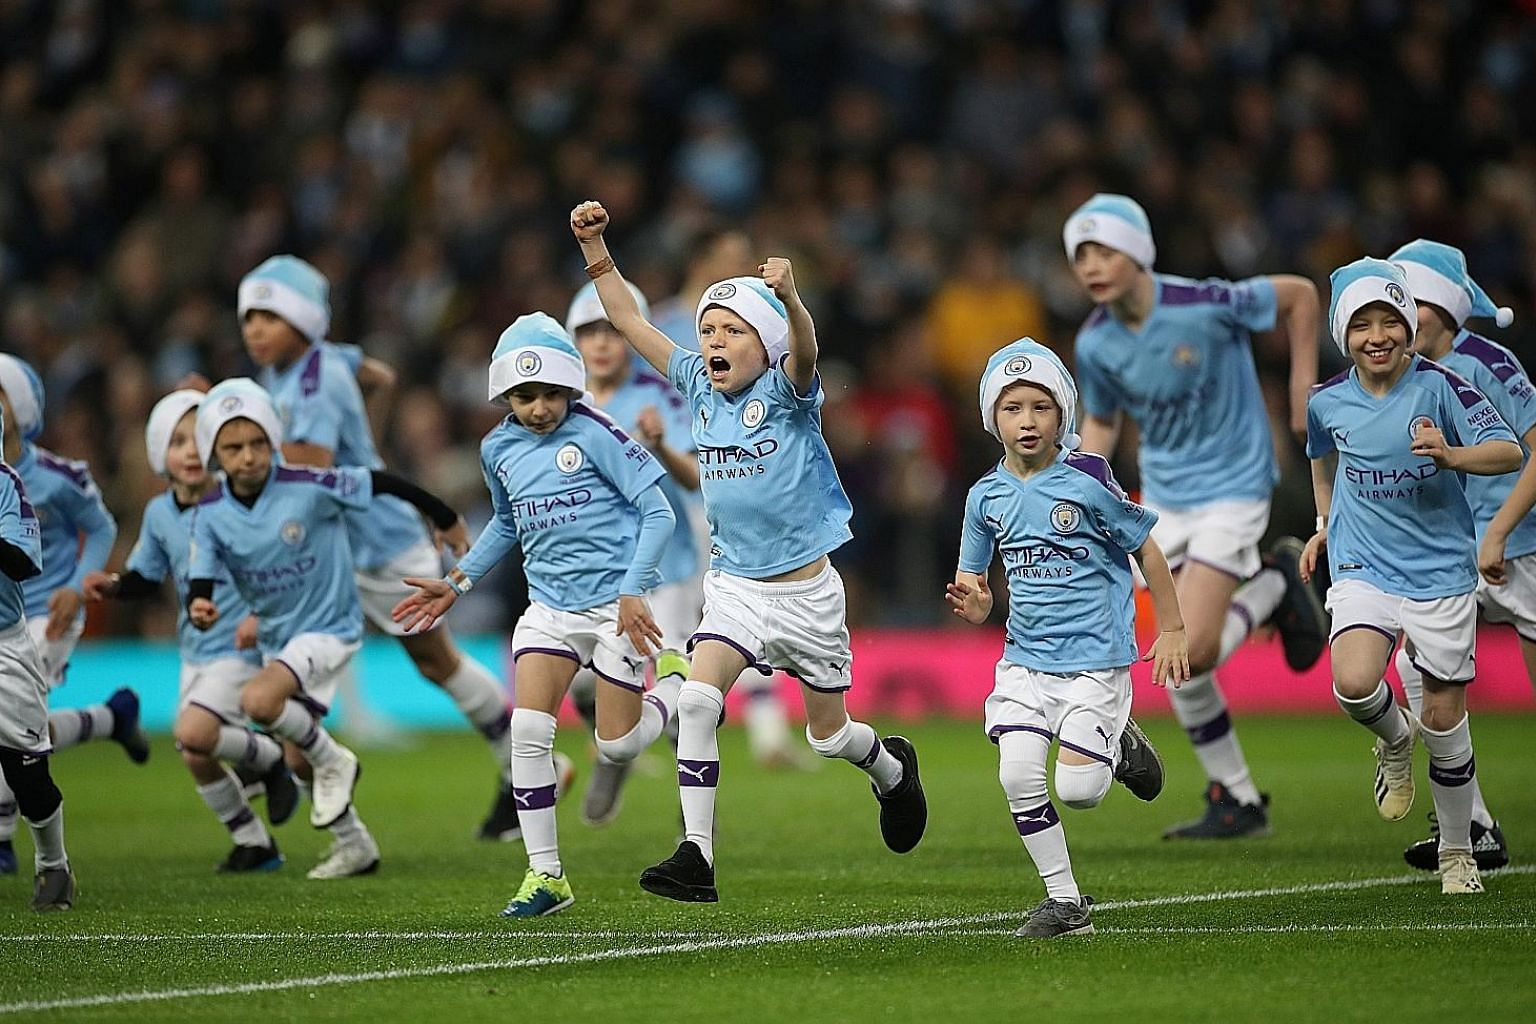 Unlike Manchester City players, the club's mascots, seen here before the Dec 21 Leicester game, were spared Friday's match at Wolves. Suitably refreshed, the mascots will reappear tonight against Sheffield United. PHOTO: REUTERS